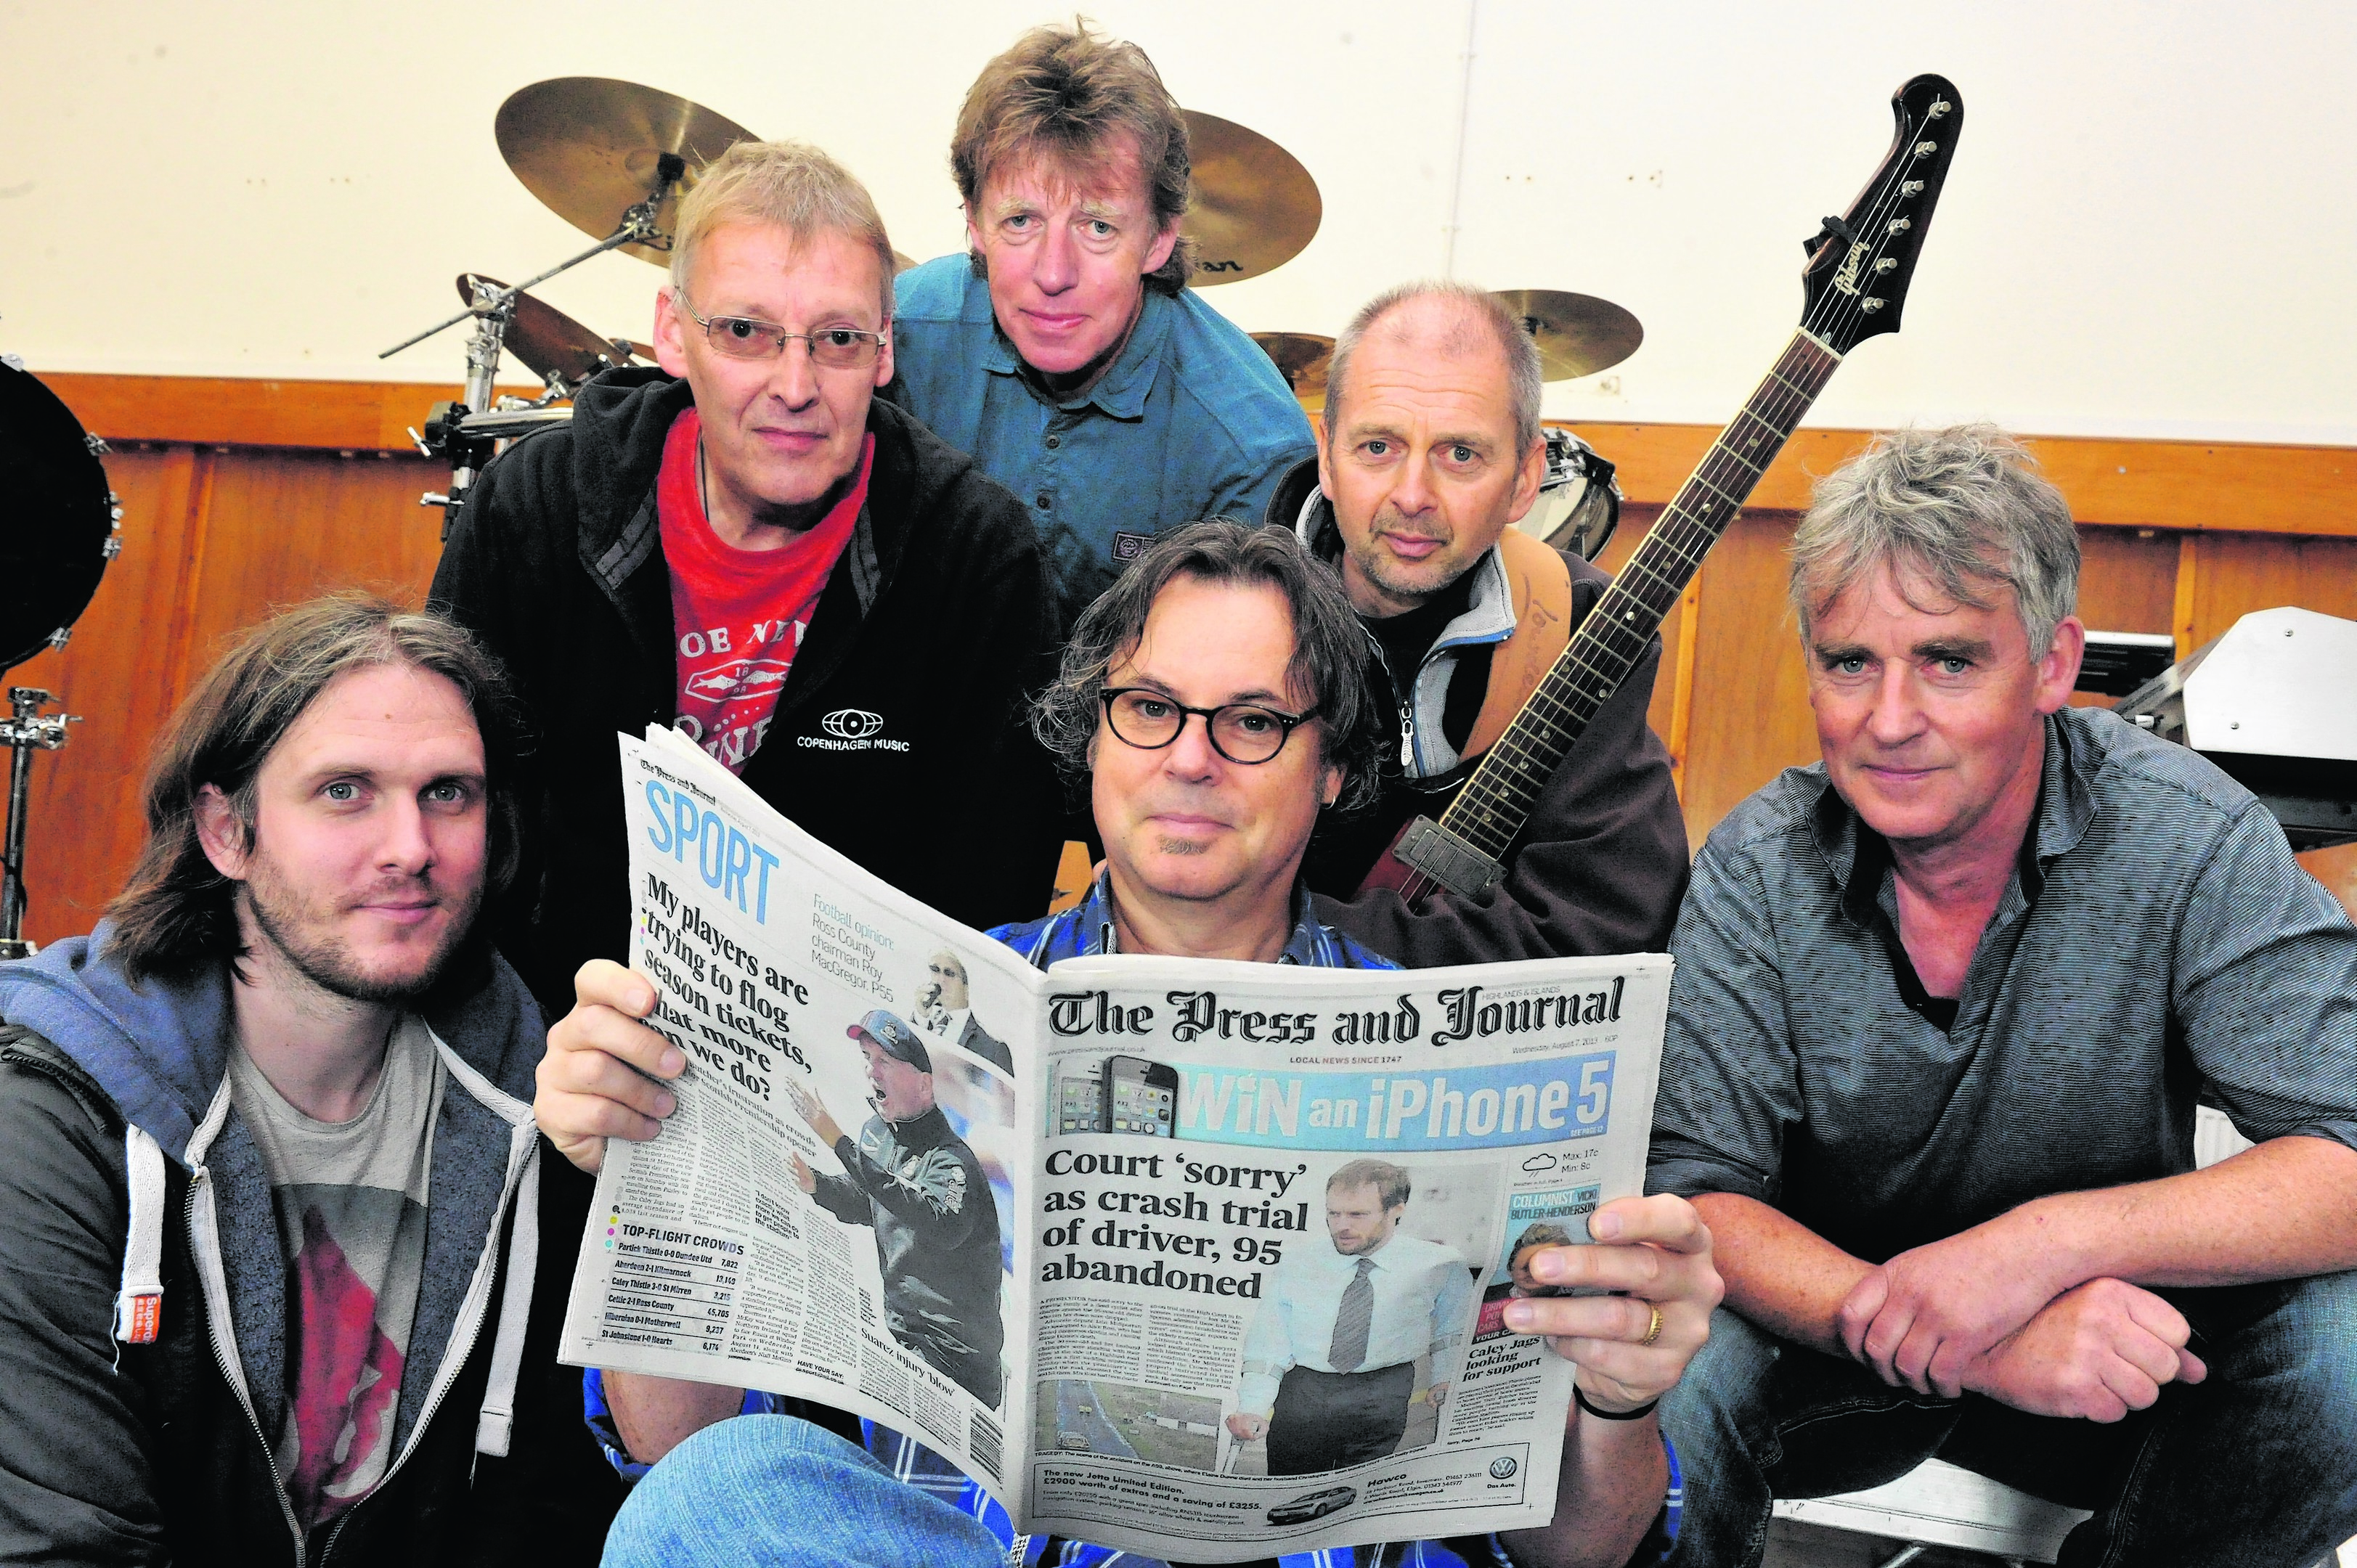 7Aug13.  Balloch, Inverness-shire.  Runrig chat to The Press & Journal before their 40th anniversary gig on the Black Isle.  Pictured from left, Brian Hurren, Iain Bayne, Rory Macdonald, Bruce Guthro (holding paper), Malcolm Jones and Calum Macdonald. . Picture by David Whittaker-Smith.          .07/08/13